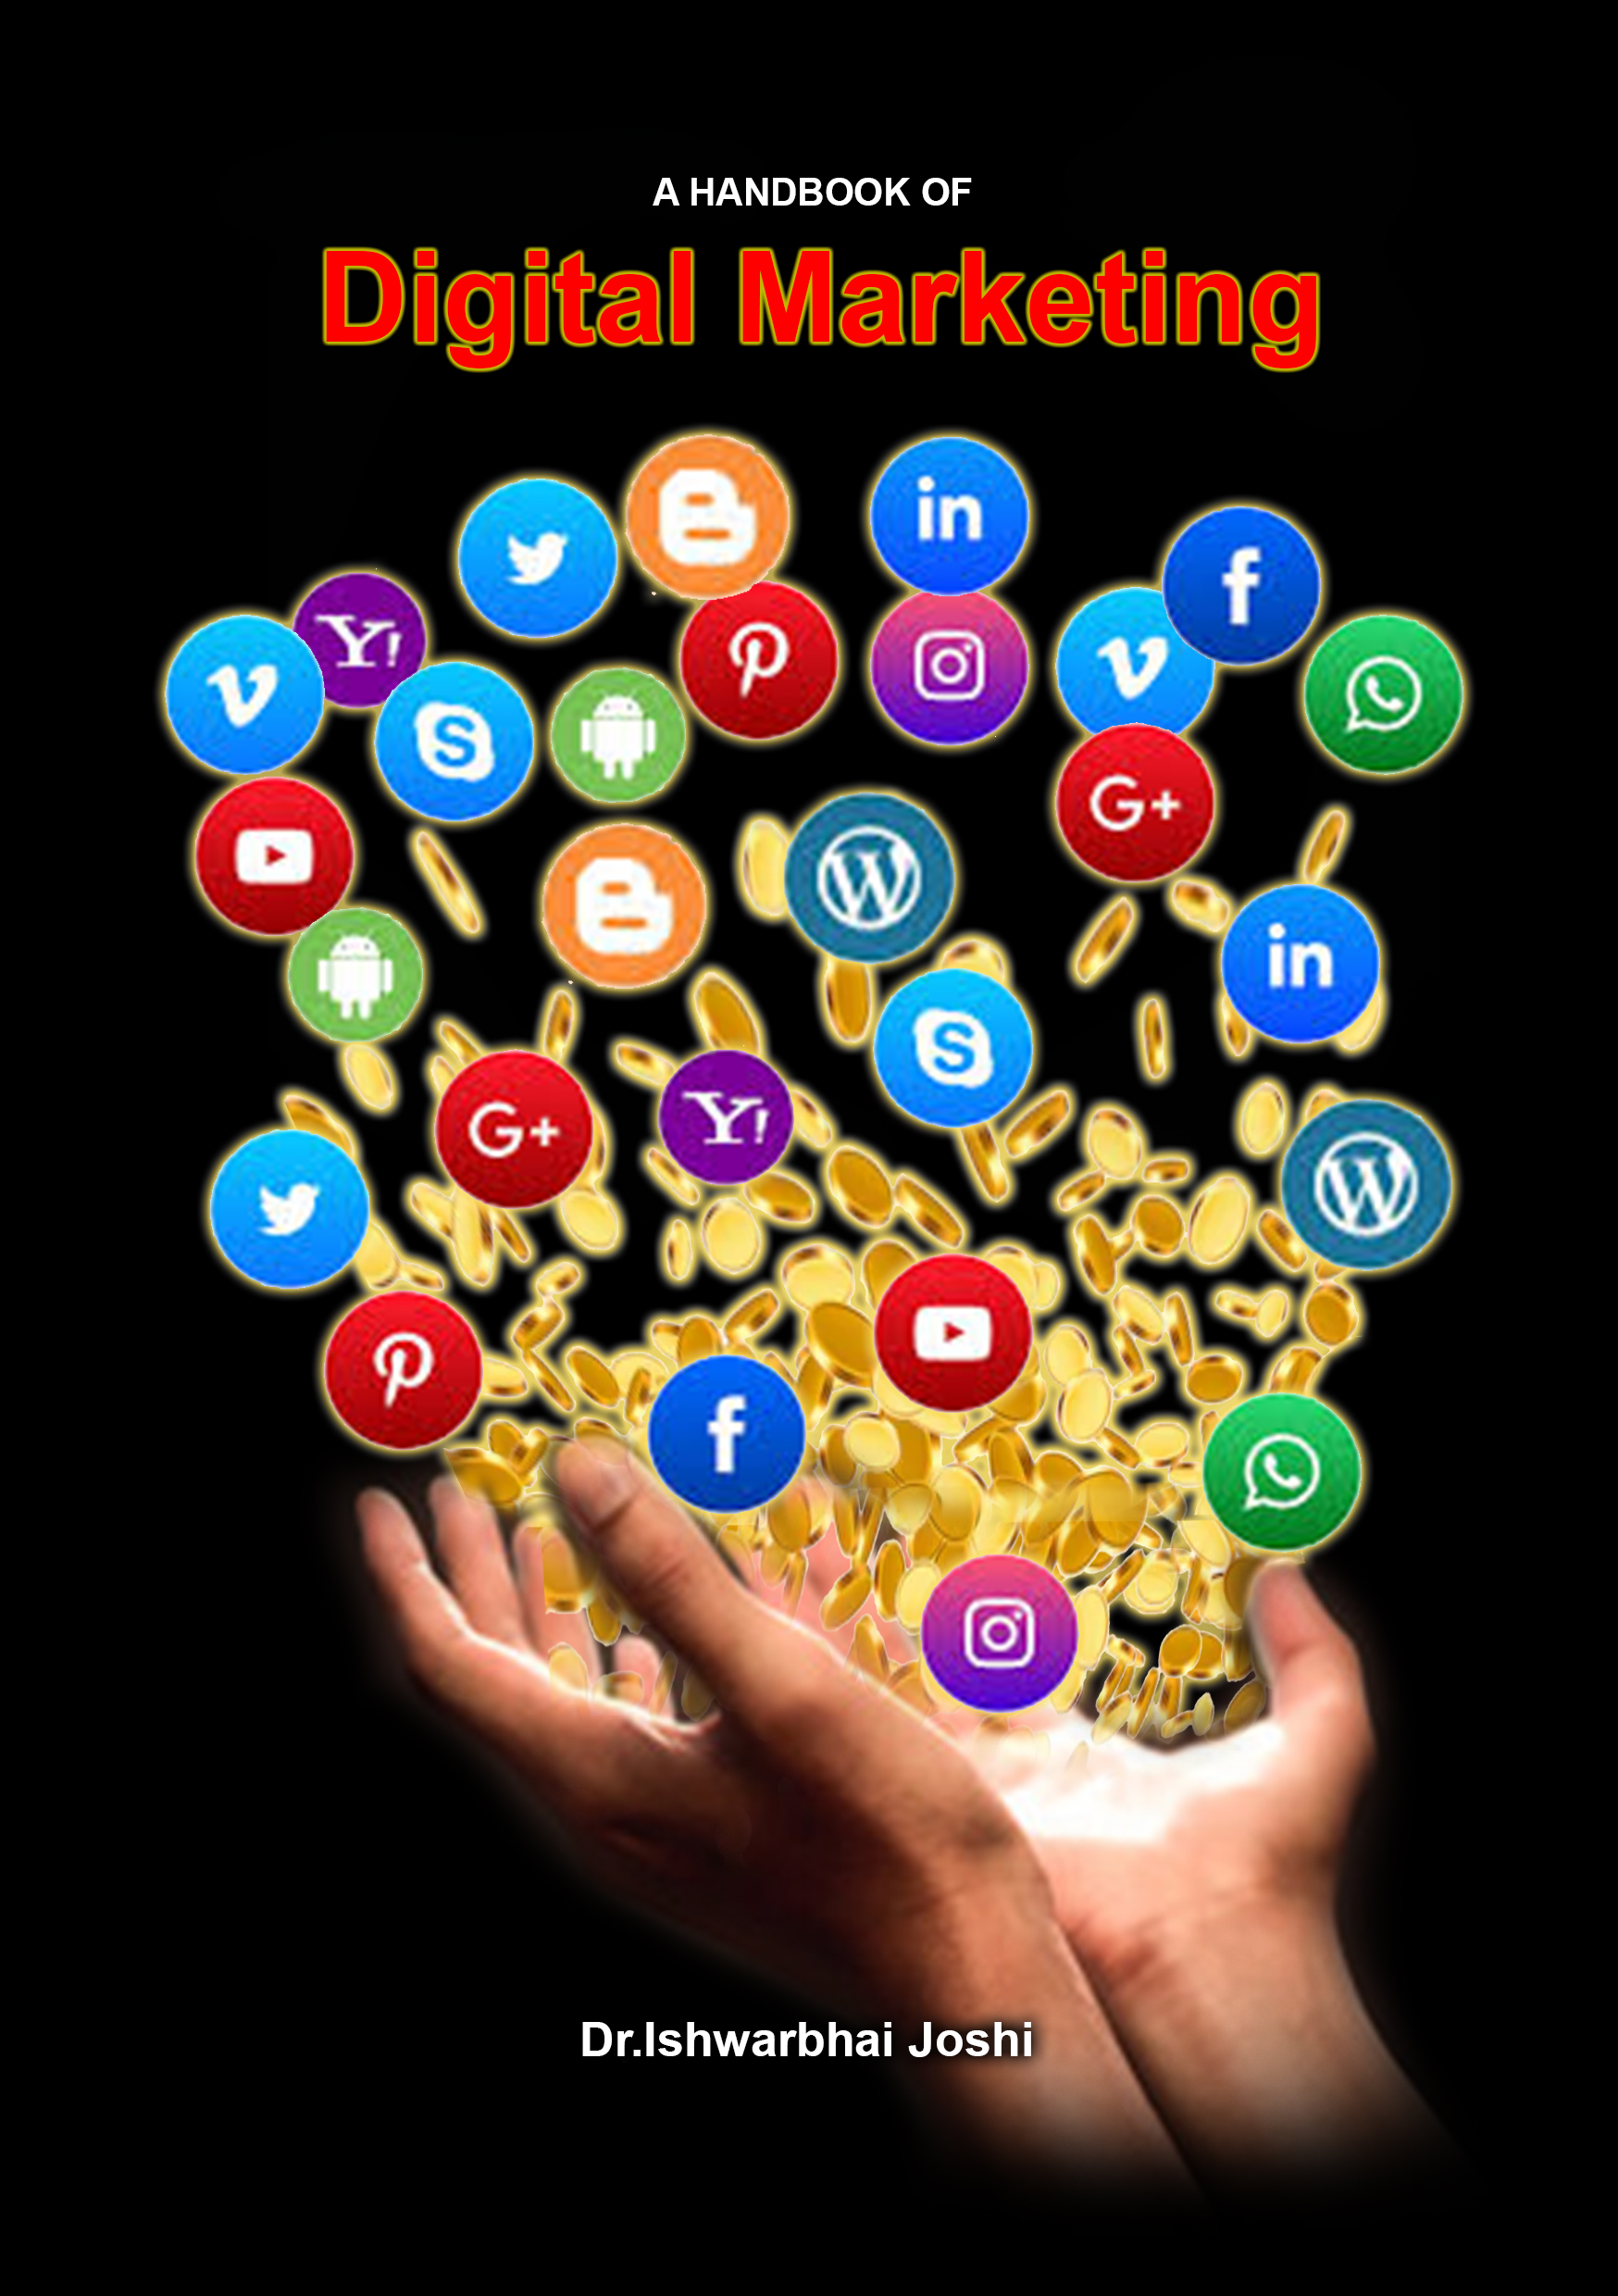 A Handbook of Digital Marketing